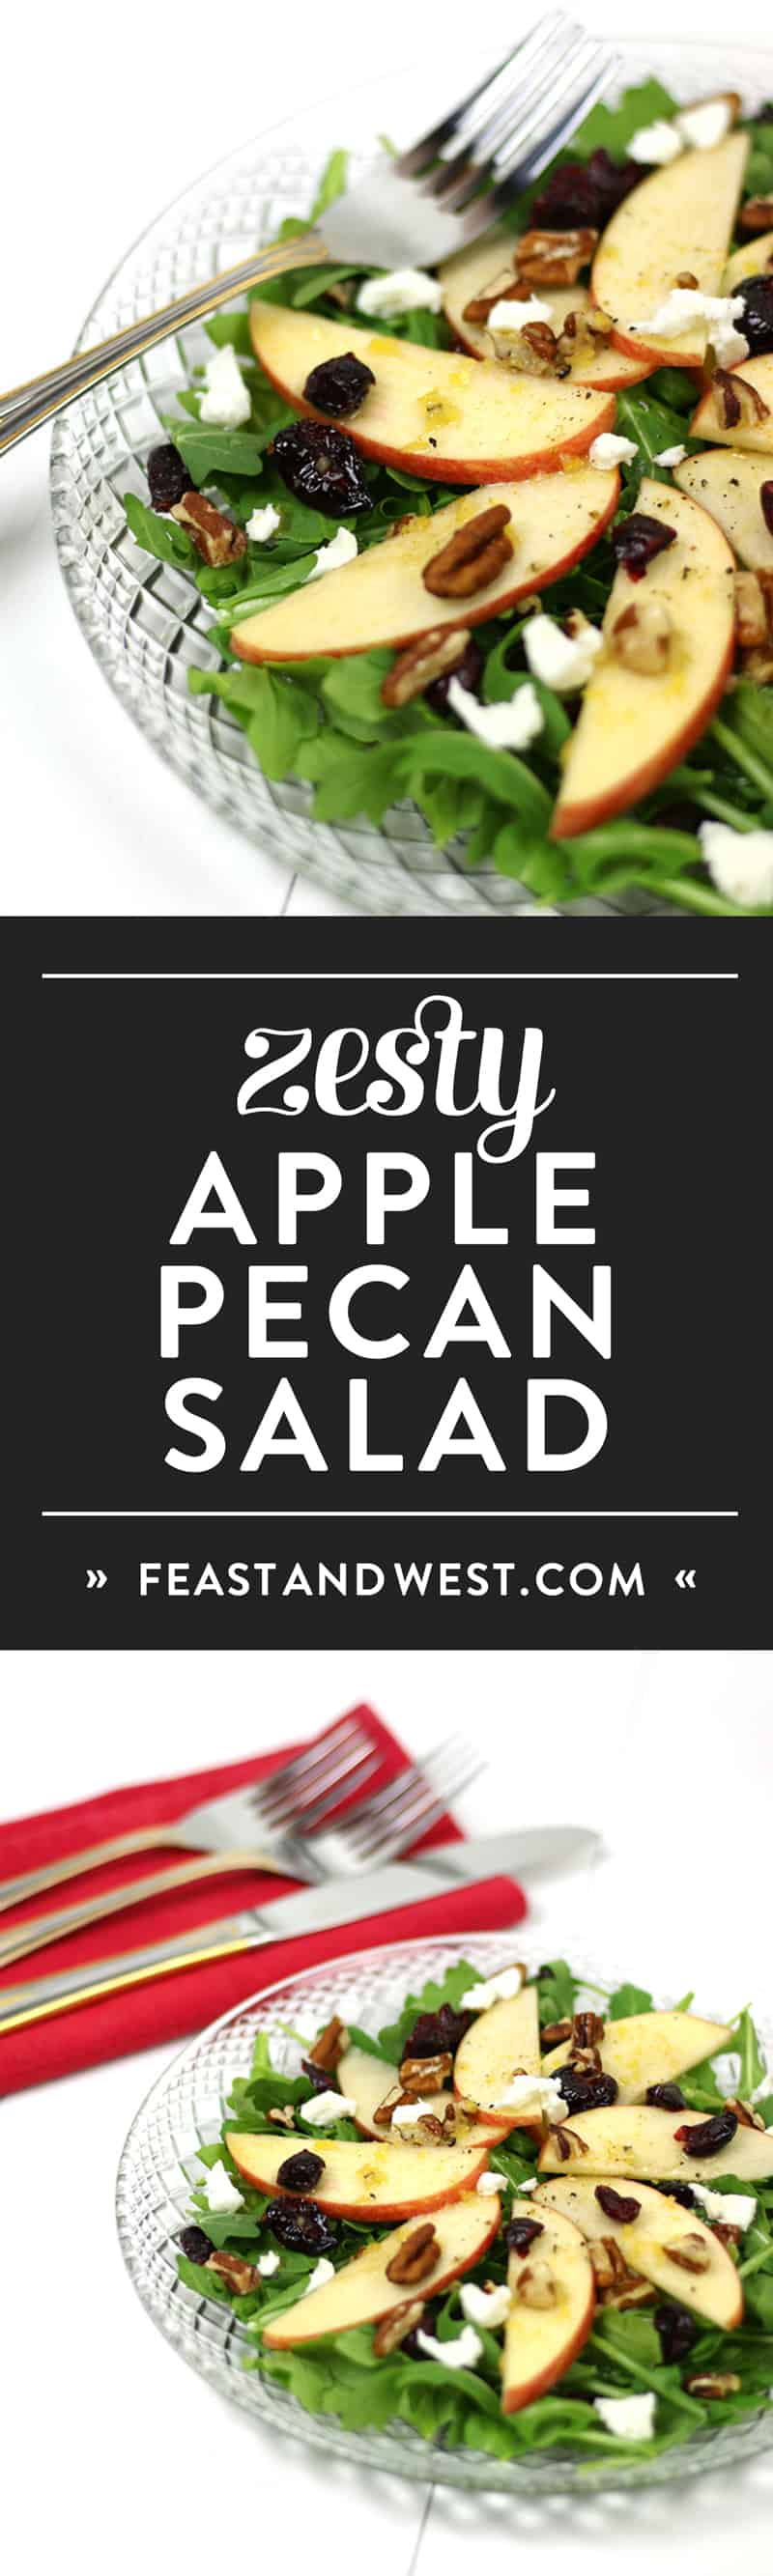 Apple Pecan Salad with Zesty Apple Dressing makes for the perfect salad for your holiday dinner party. Apples, goat cheese, pecans and dried cranberries sit atop a bed of greens and are drizzled with a sweet-and-sour dressing made with Martinelli's Apple Juice or Cider and fresh lemons. (via feastandwest.com)